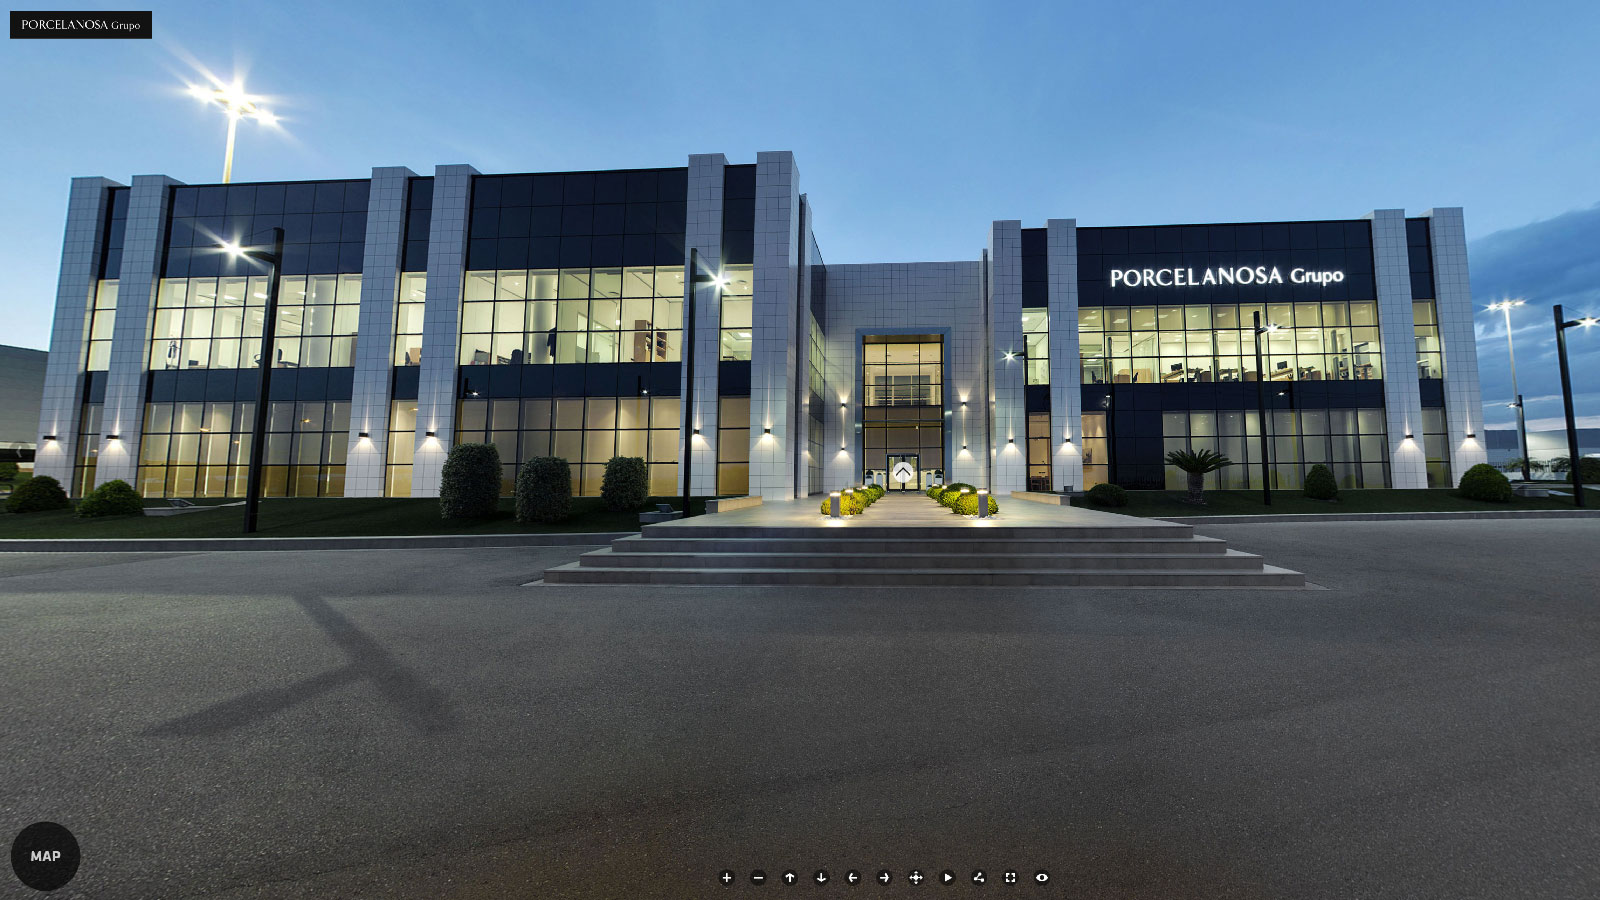 The PORCELANOSA Grupo reinforces its online presence with a new virtual tour